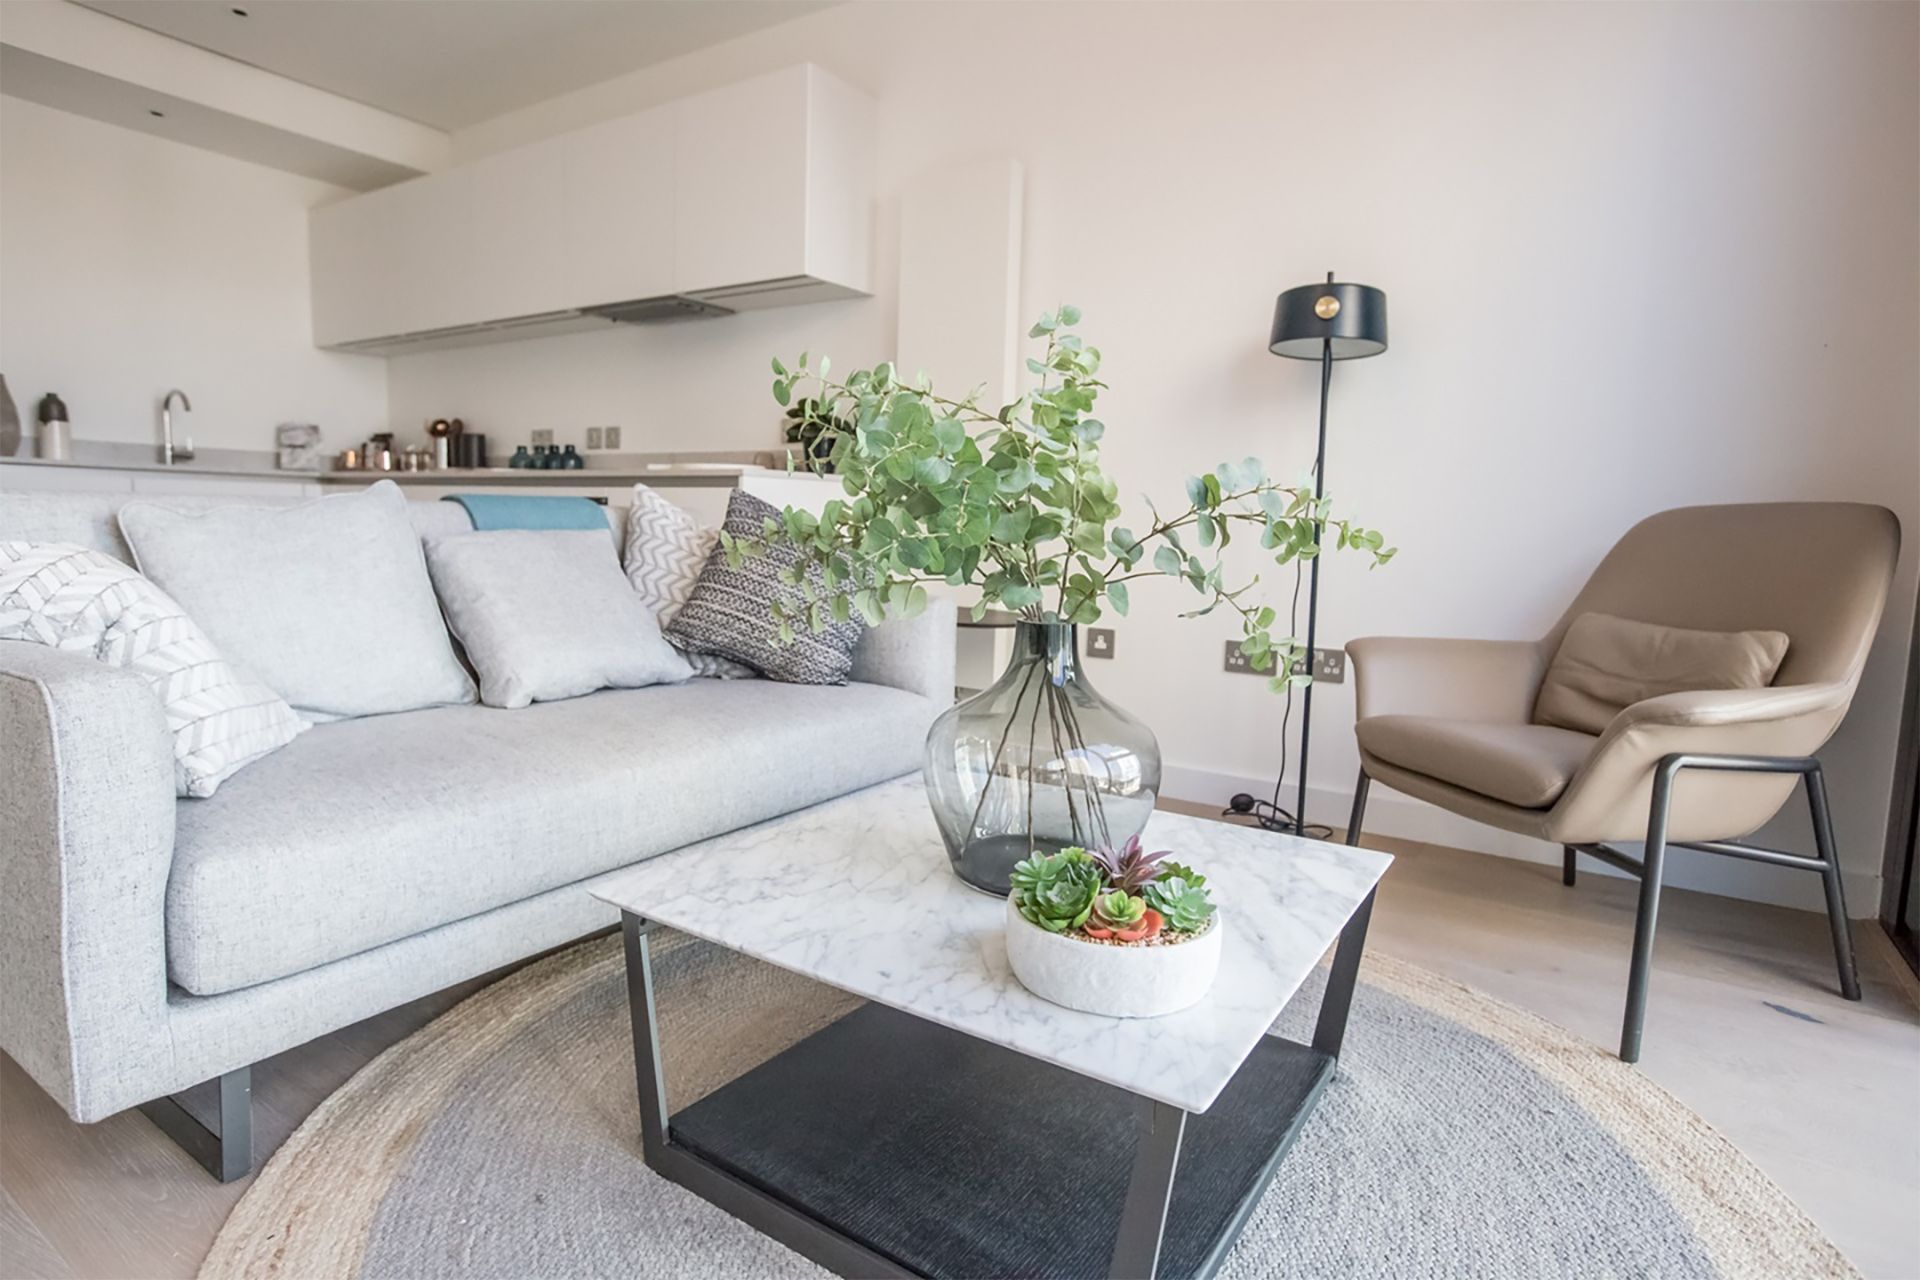 Studio apartment to rent in London HIL-HH-0226